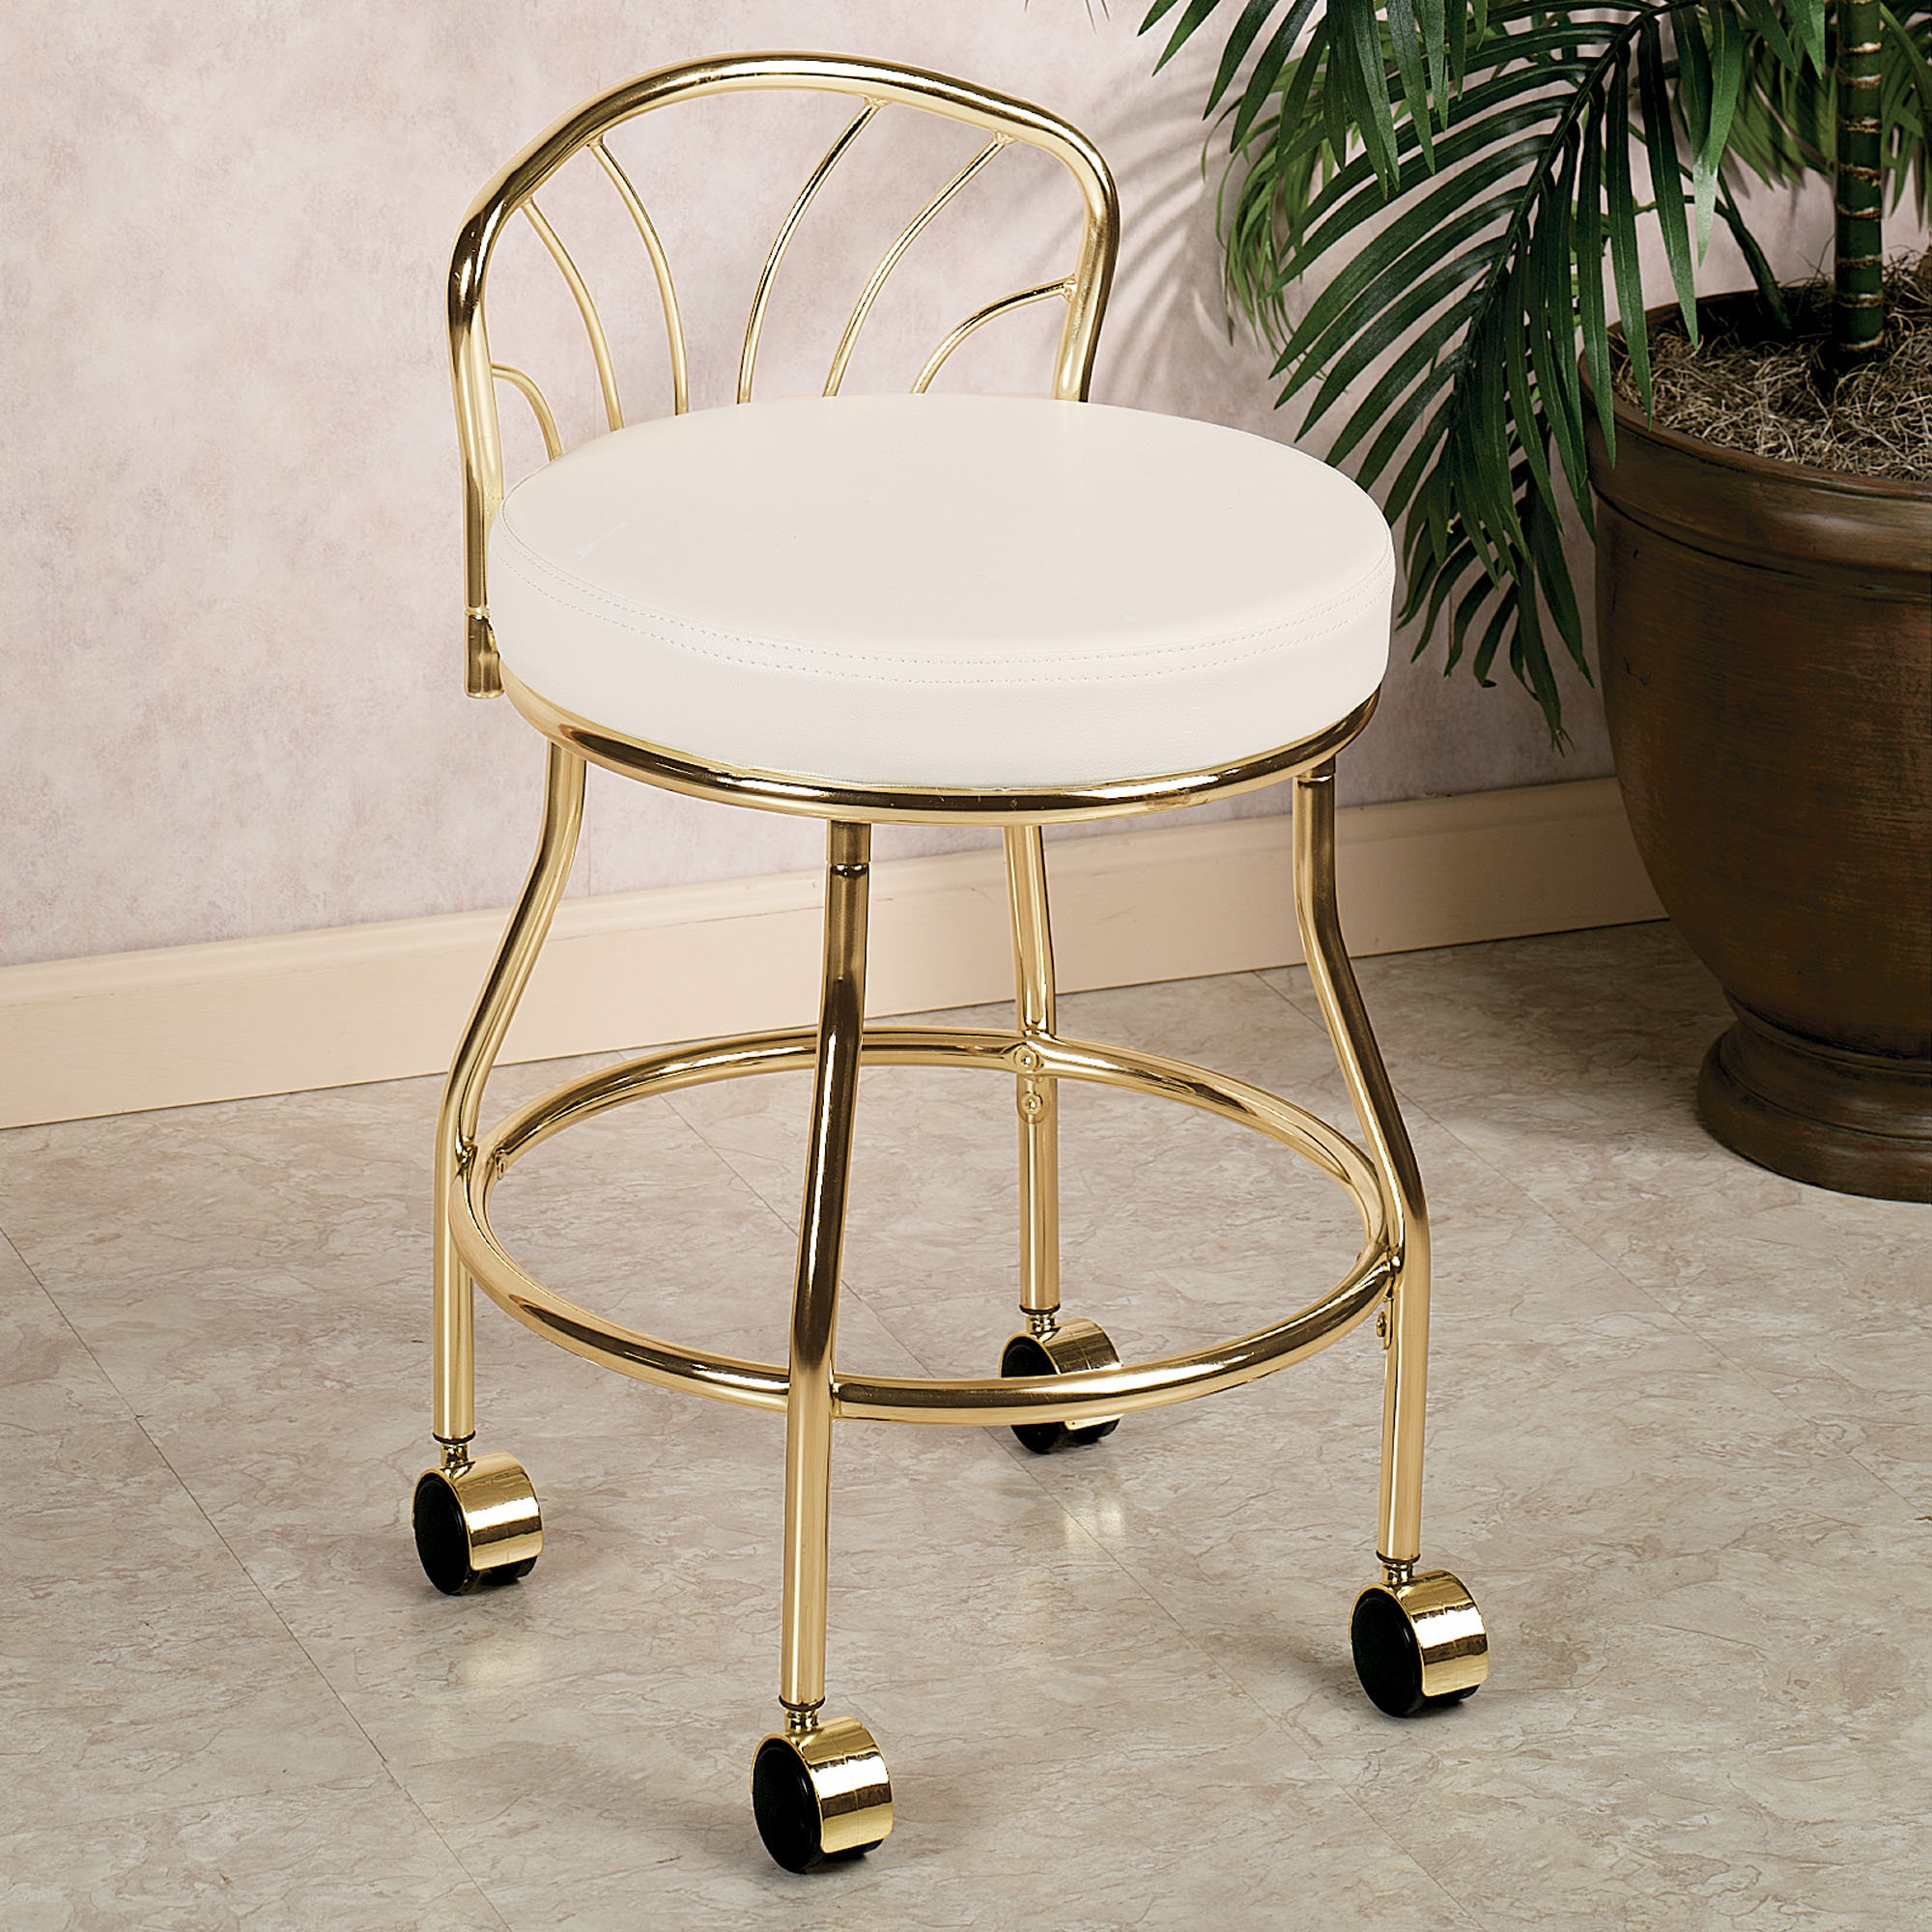 makeup vanity chair gold colored makeup vanity chair idea with white cushion and casters